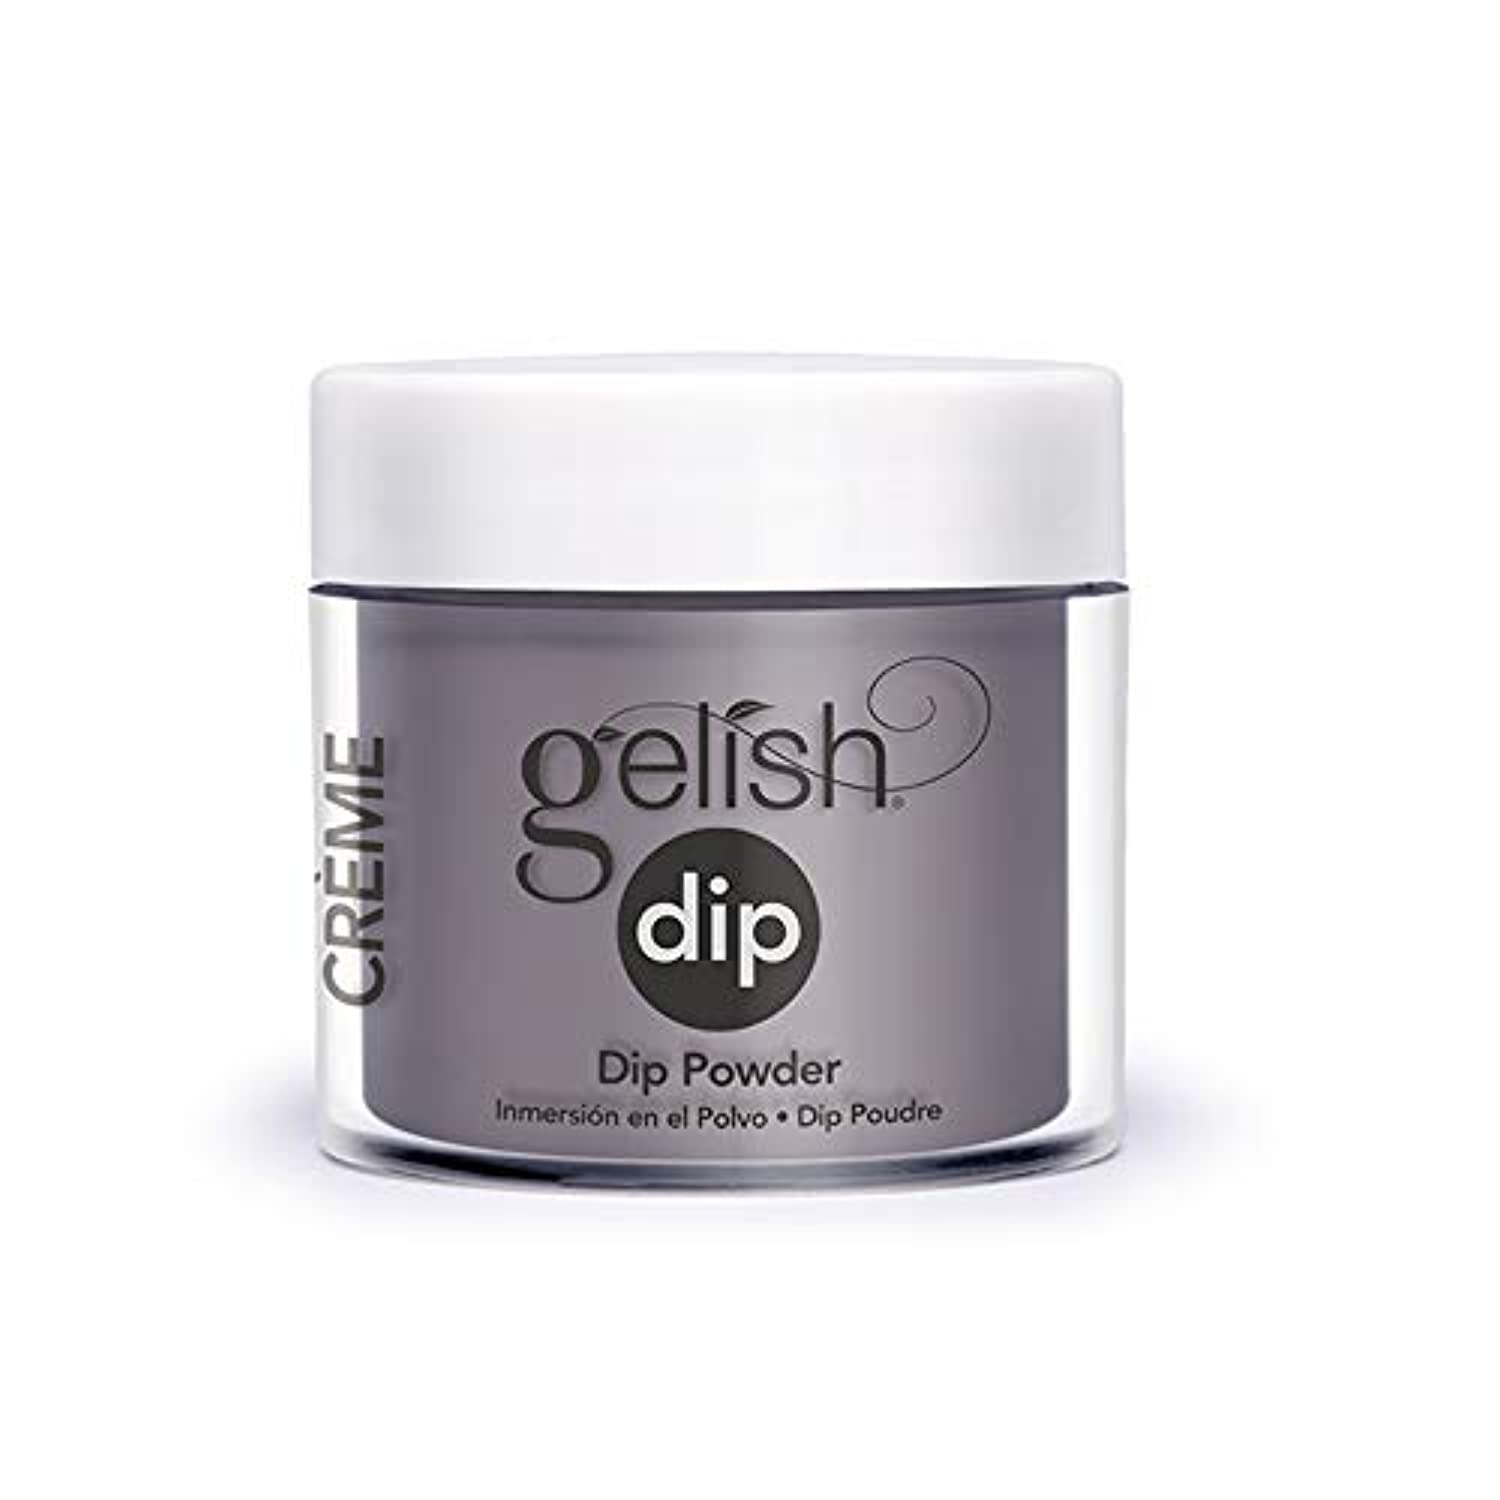 Harmony Gelish - Acrylic Dip Powder - Met my Match - 23g / 0.8oz